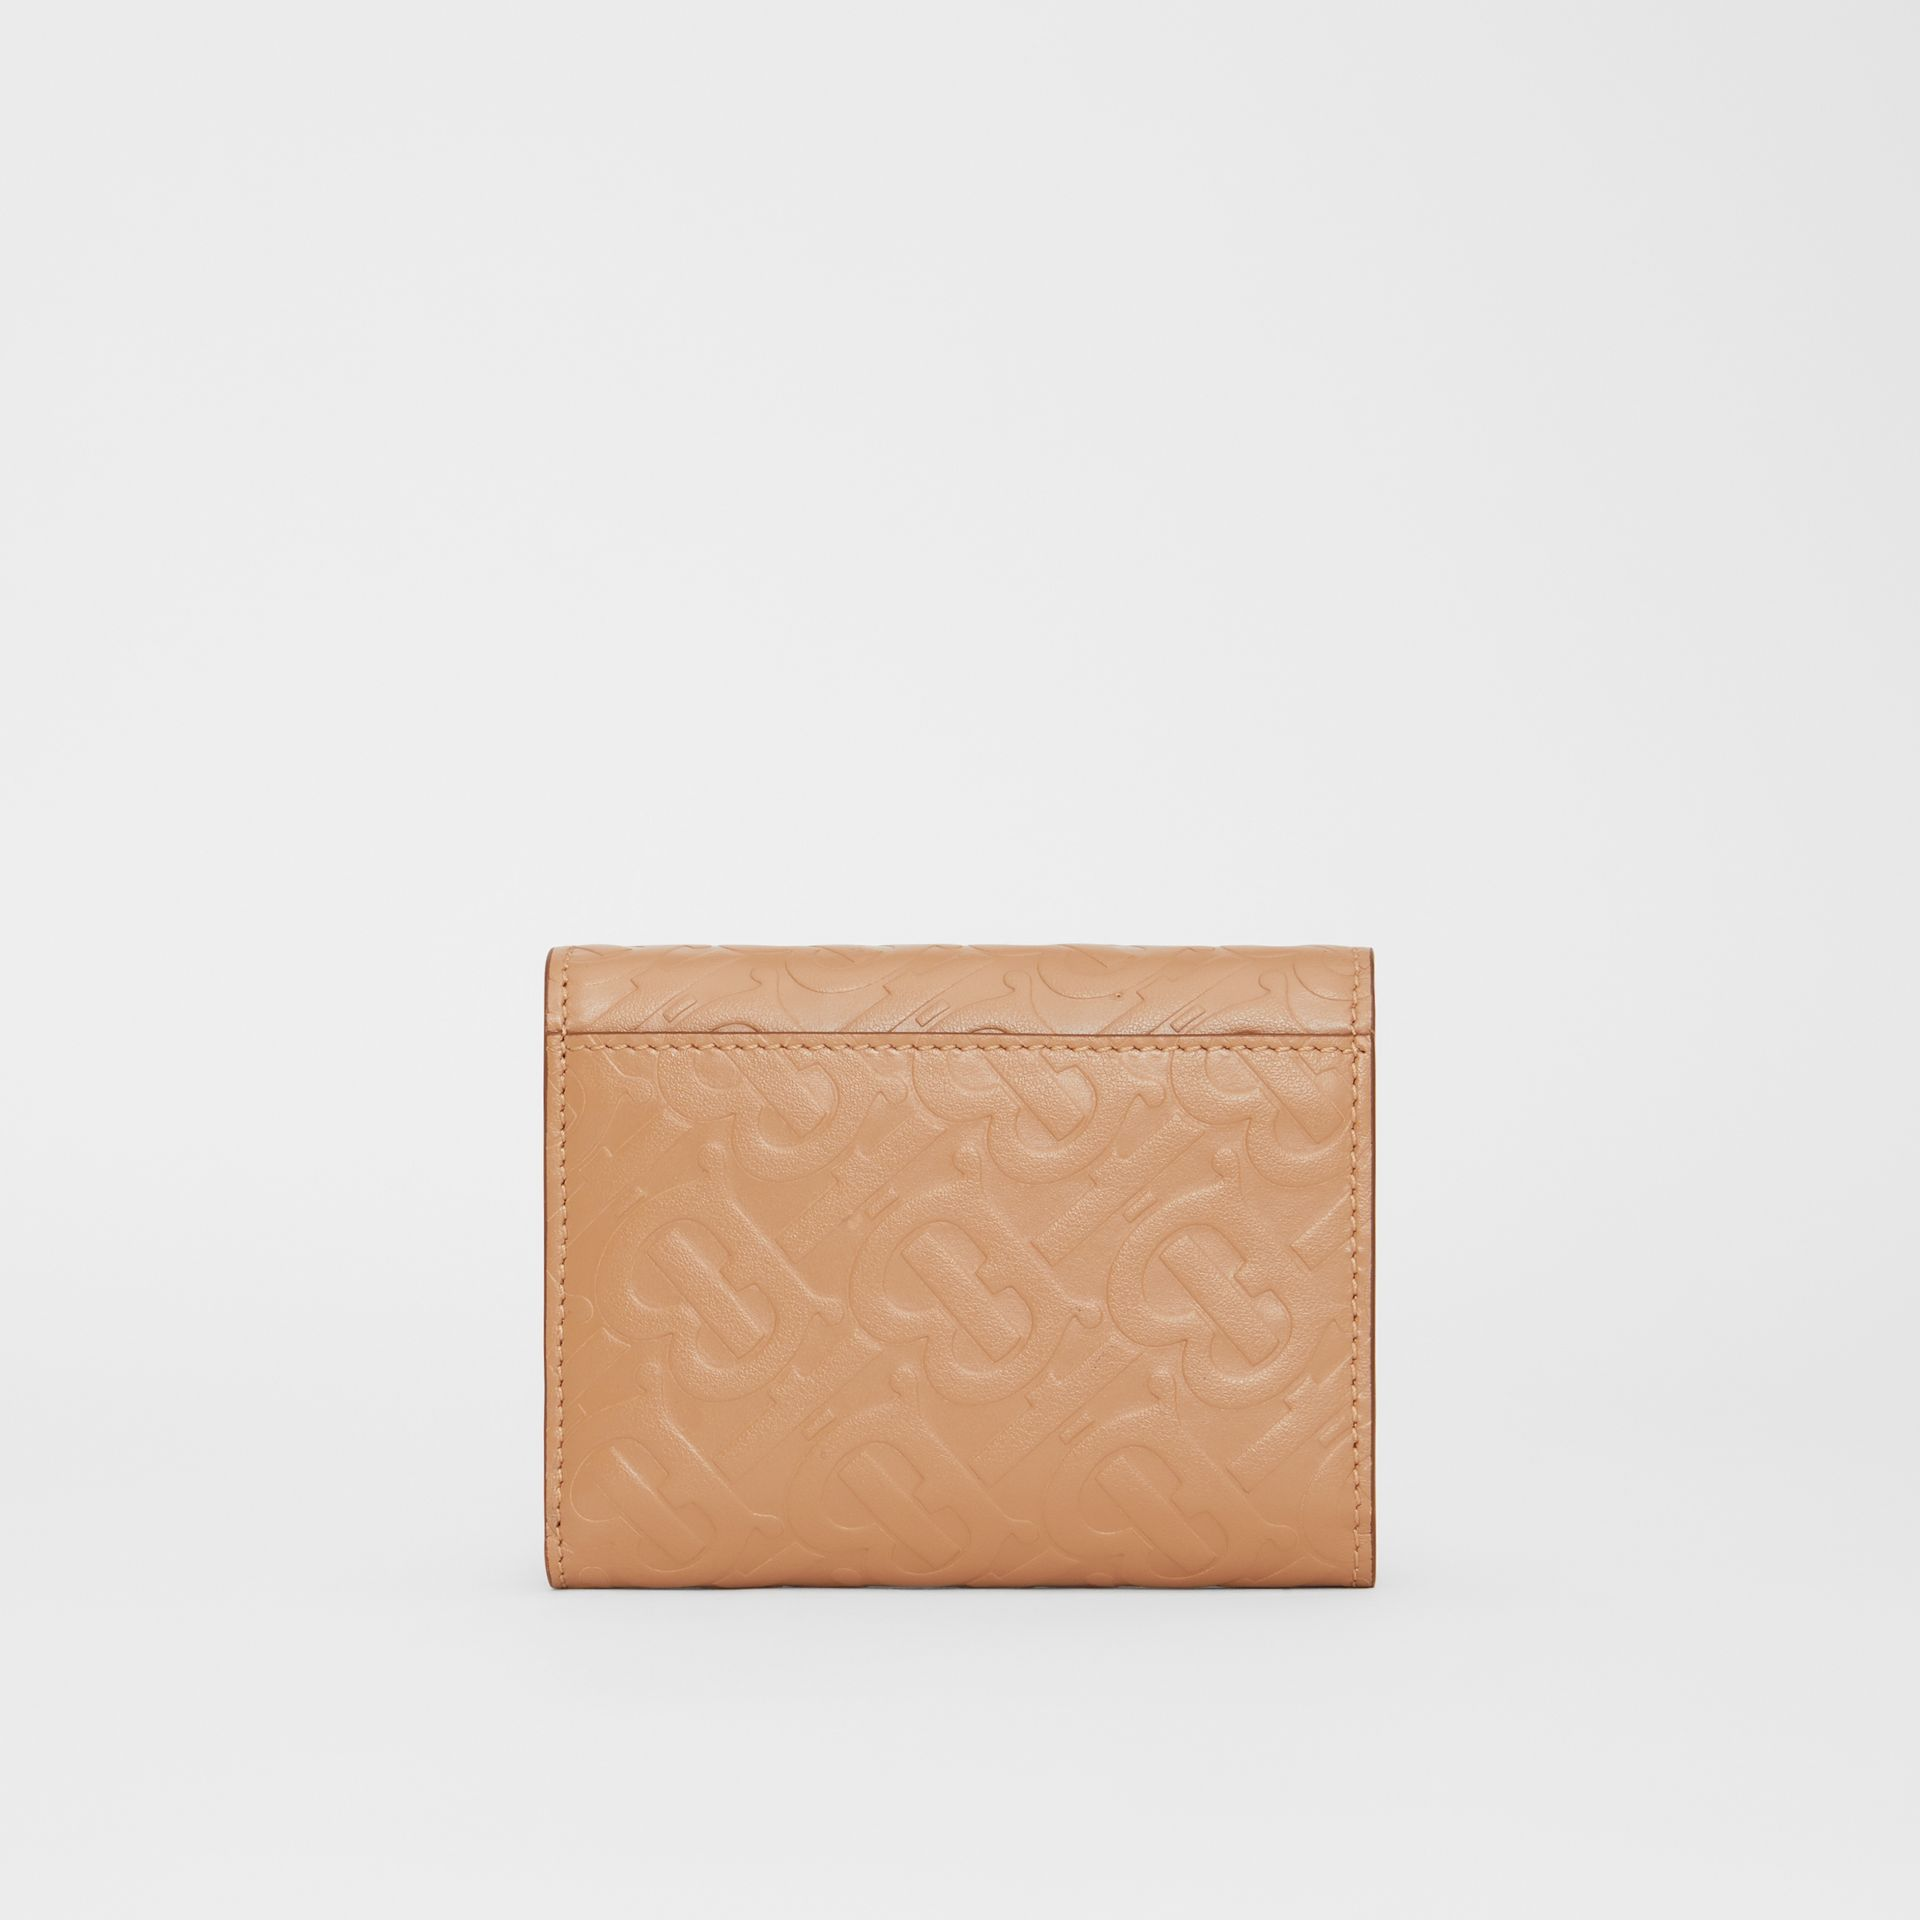 Small Monogram Leather Folding Wallet in Light Camel - Women | Burberry Singapore - gallery image 4